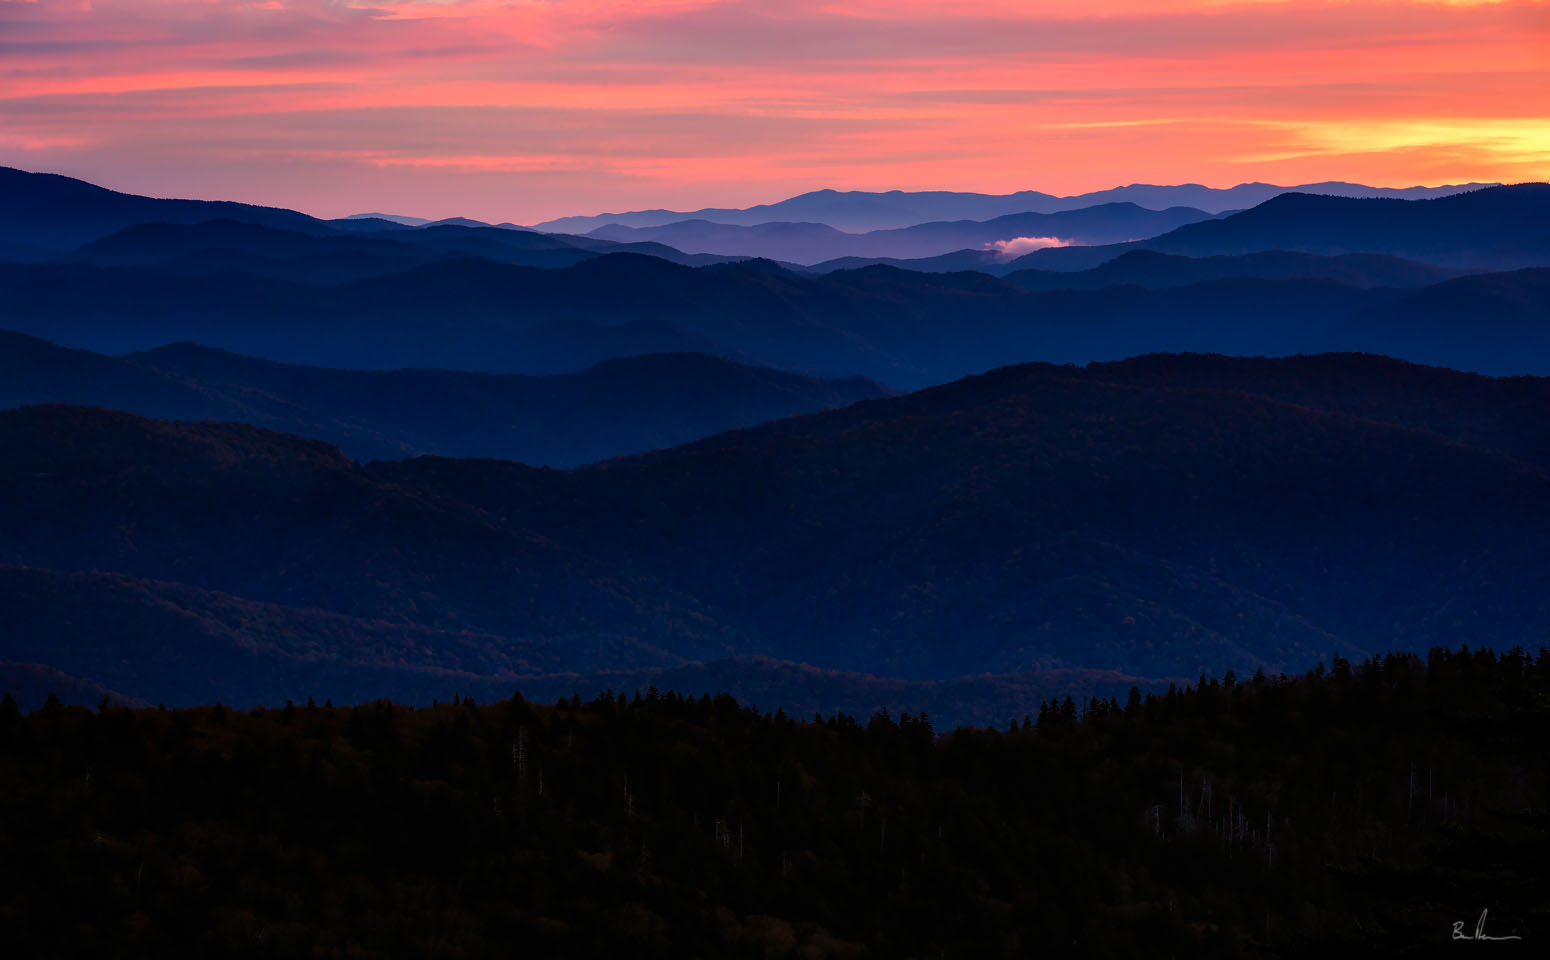 Smoky mountain sunrise photo from Clingmans Dome